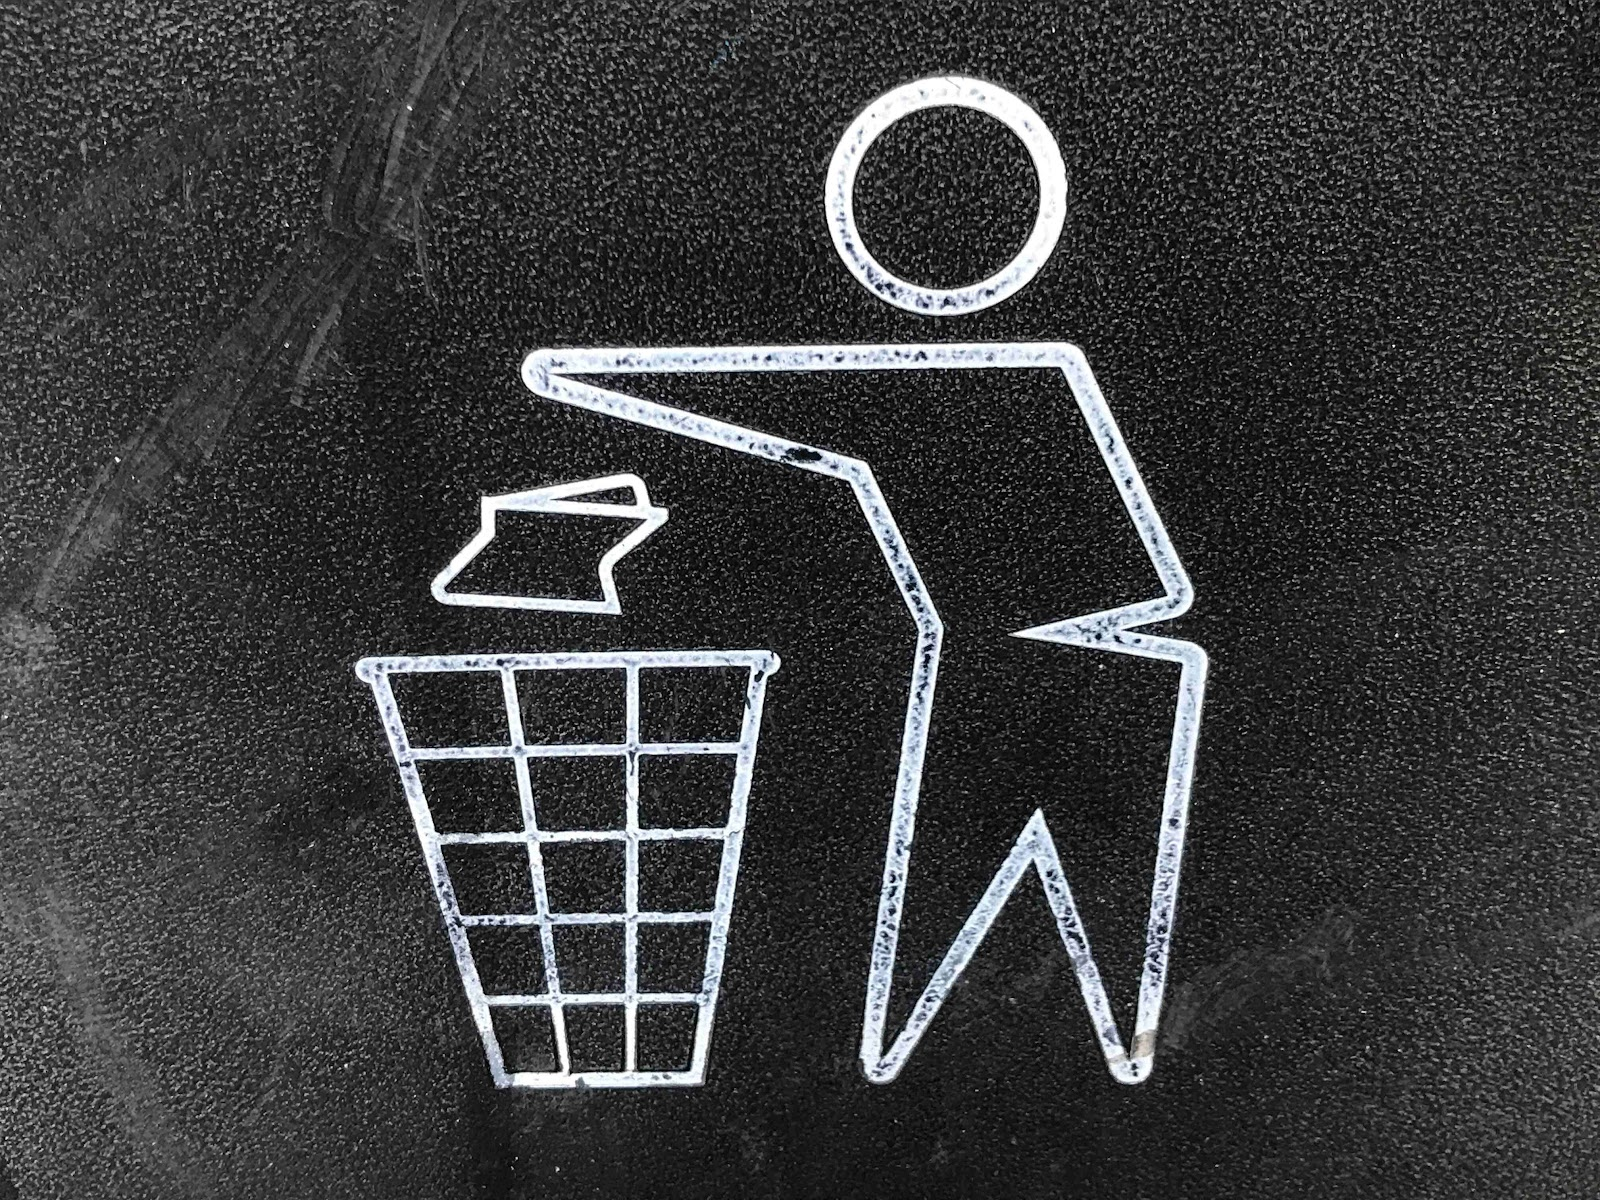 Drawing of a person sketch putting paper in a trash can